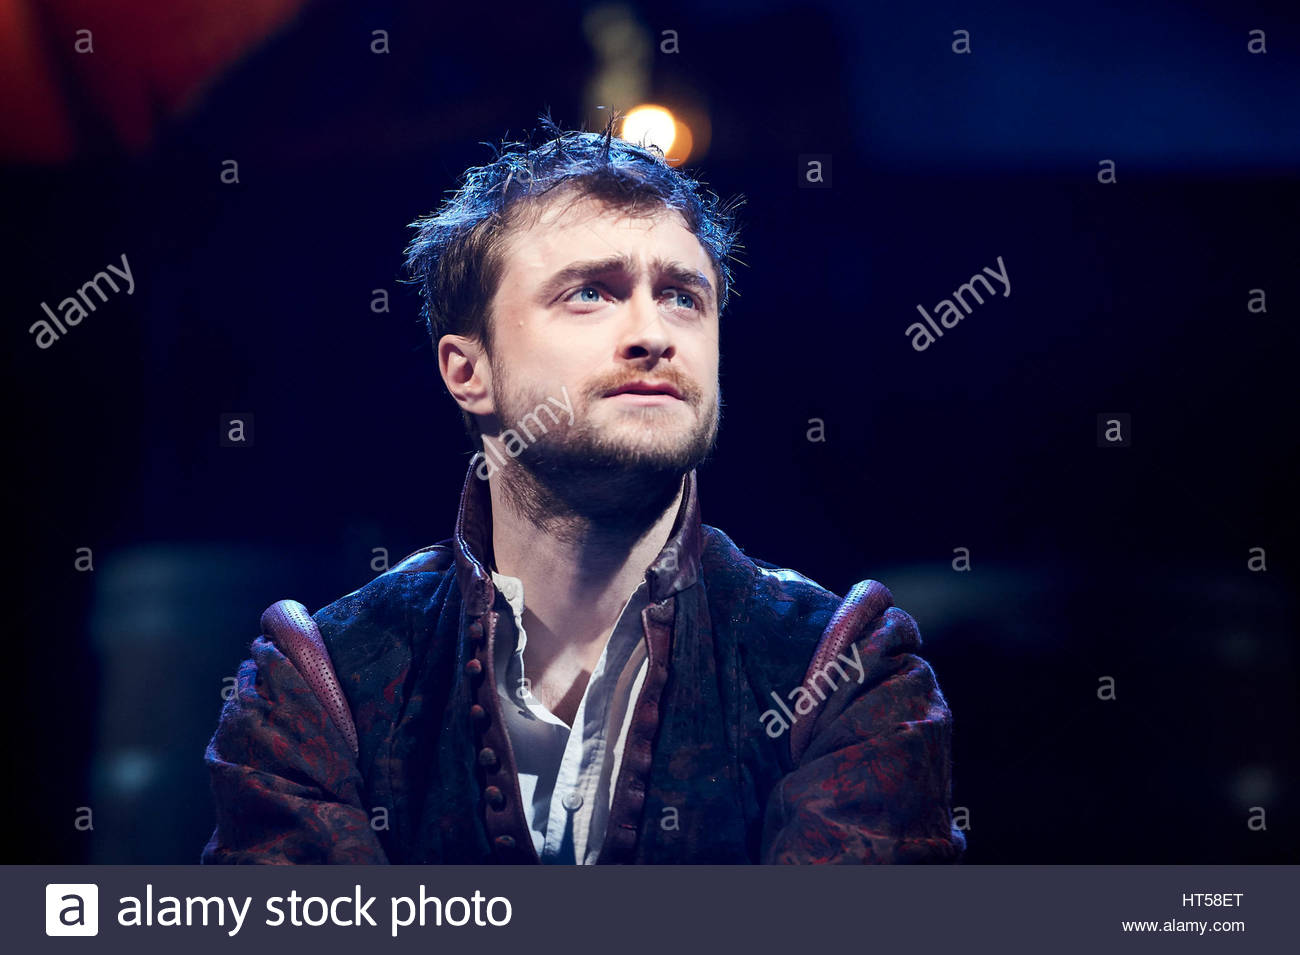 Rosencrantz and Guildenstern by Tom Stoppard, directed by David Leveaux. With Daniel Radcliffe as Rosencrantz. Opens - Stock Image